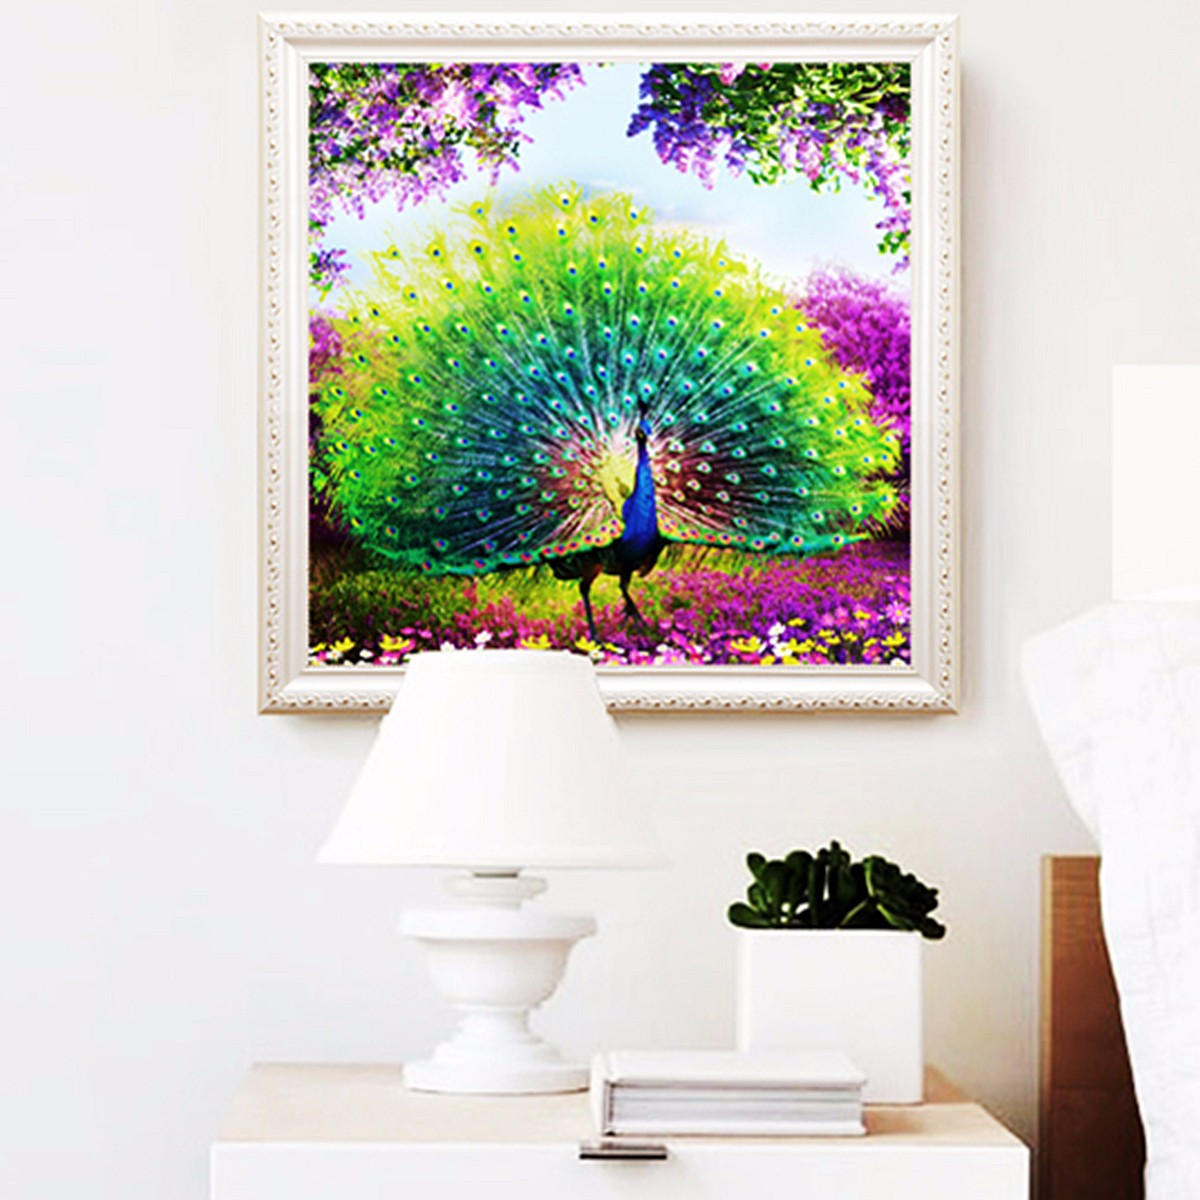 DIY 5D Diamond Embroidery Painting Flower Peacock Mosaic CrossStitch ...